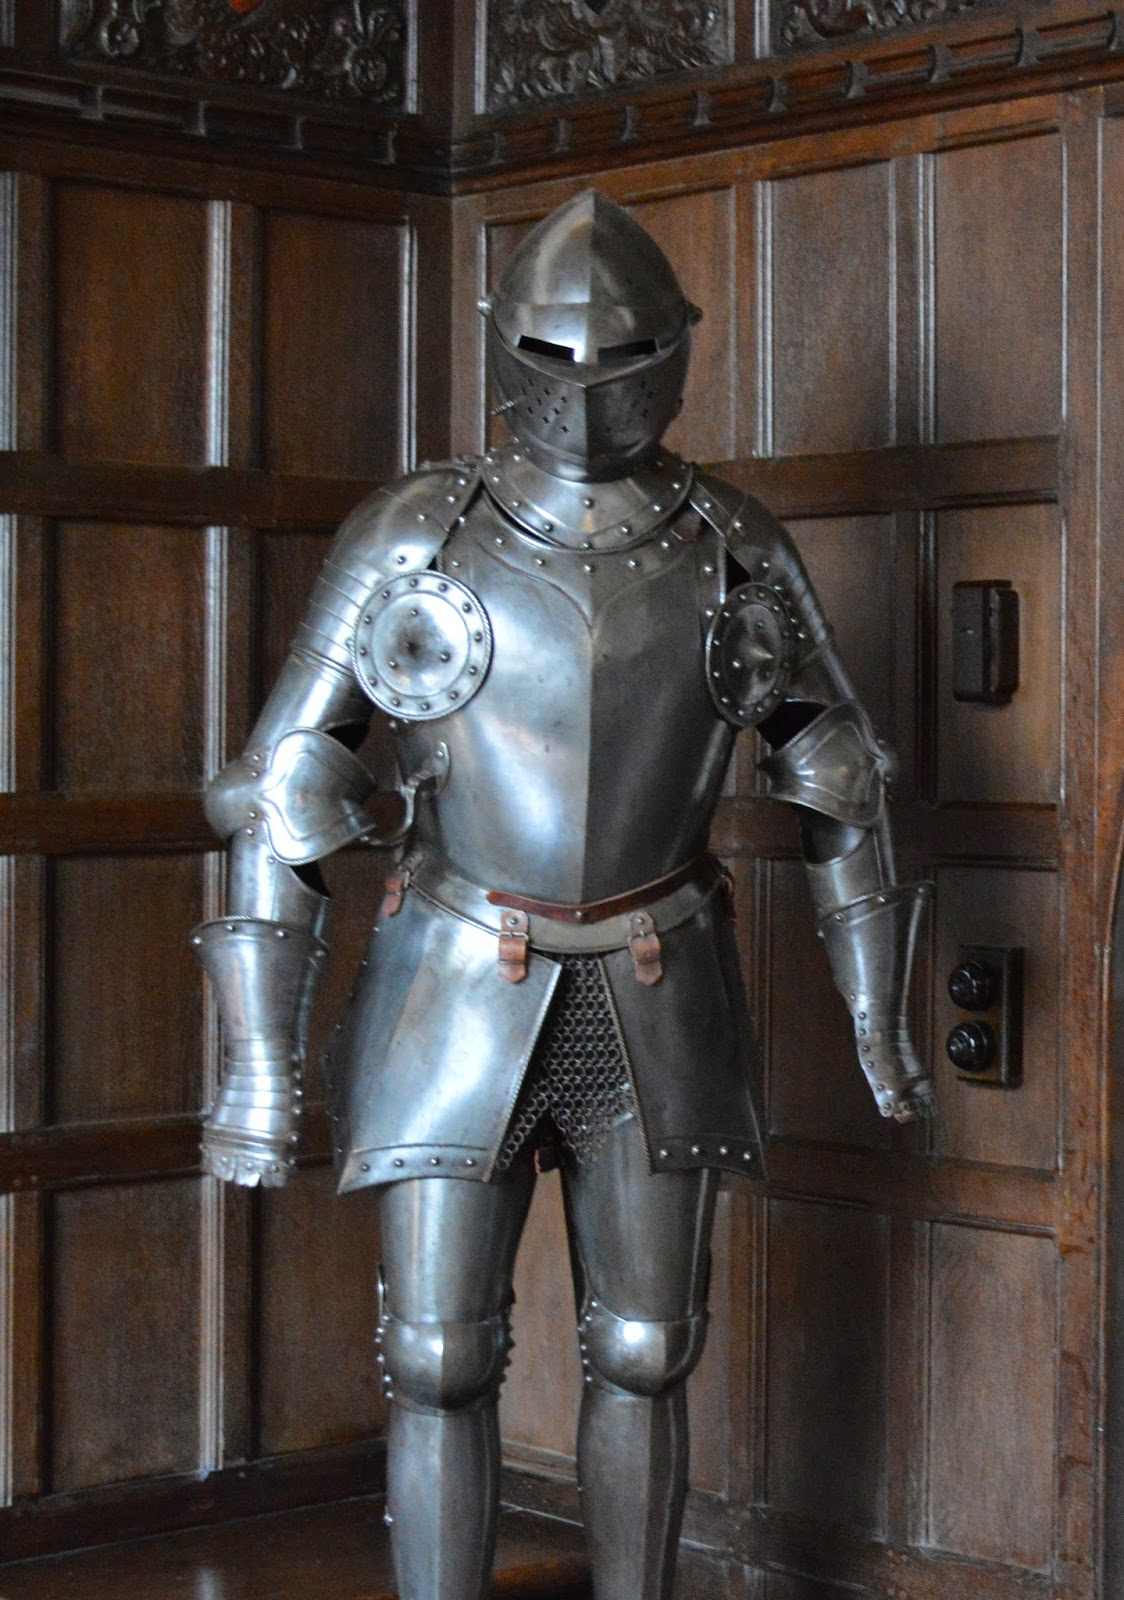 Ightham Mote, visit, England, History, Historical, interior, day trip, National trust, photo, photography, suit of armour, jousting, knight